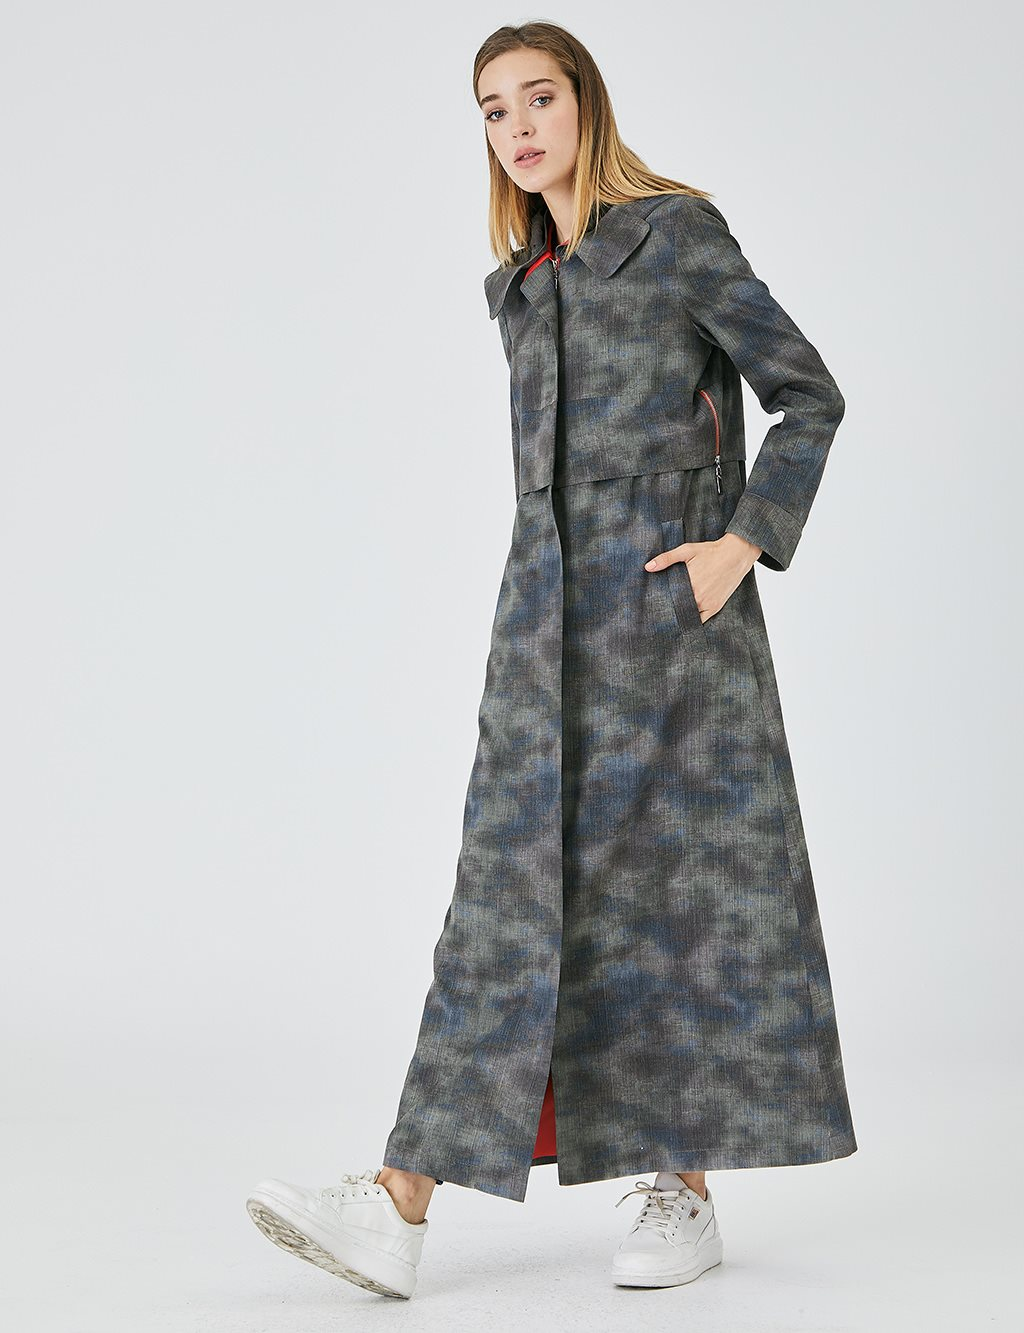 Camouflage Patterned Hooded Topcoat A20 15003 Smoked